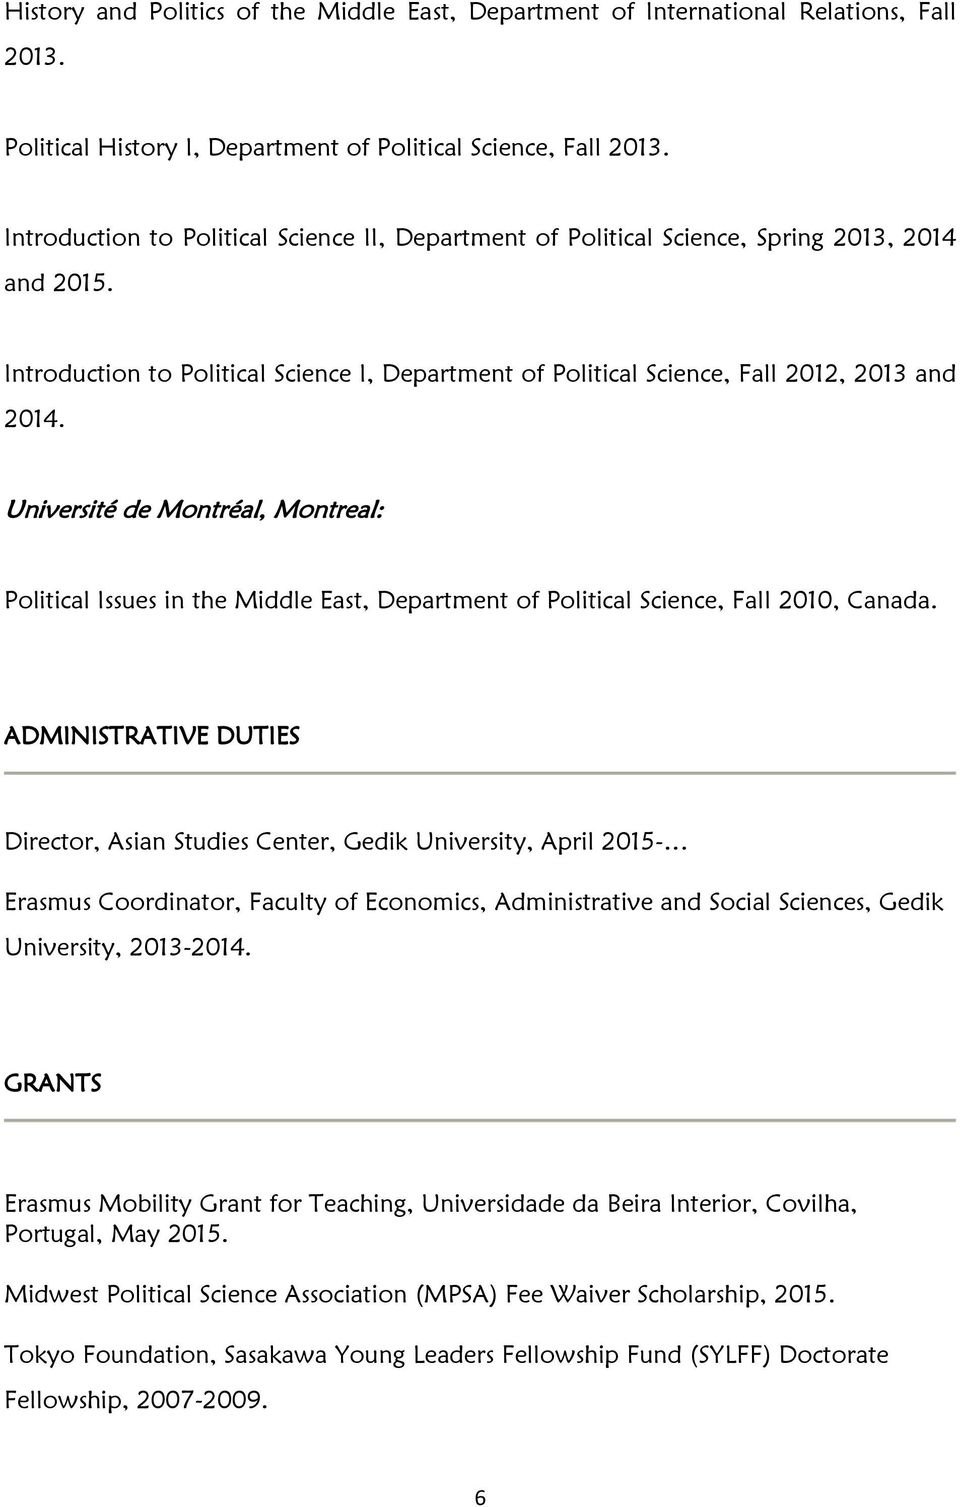 Université de Montréal, Montreal: Political Issues in the Middle East, Department of Political Science, Fall 2010, Canada.